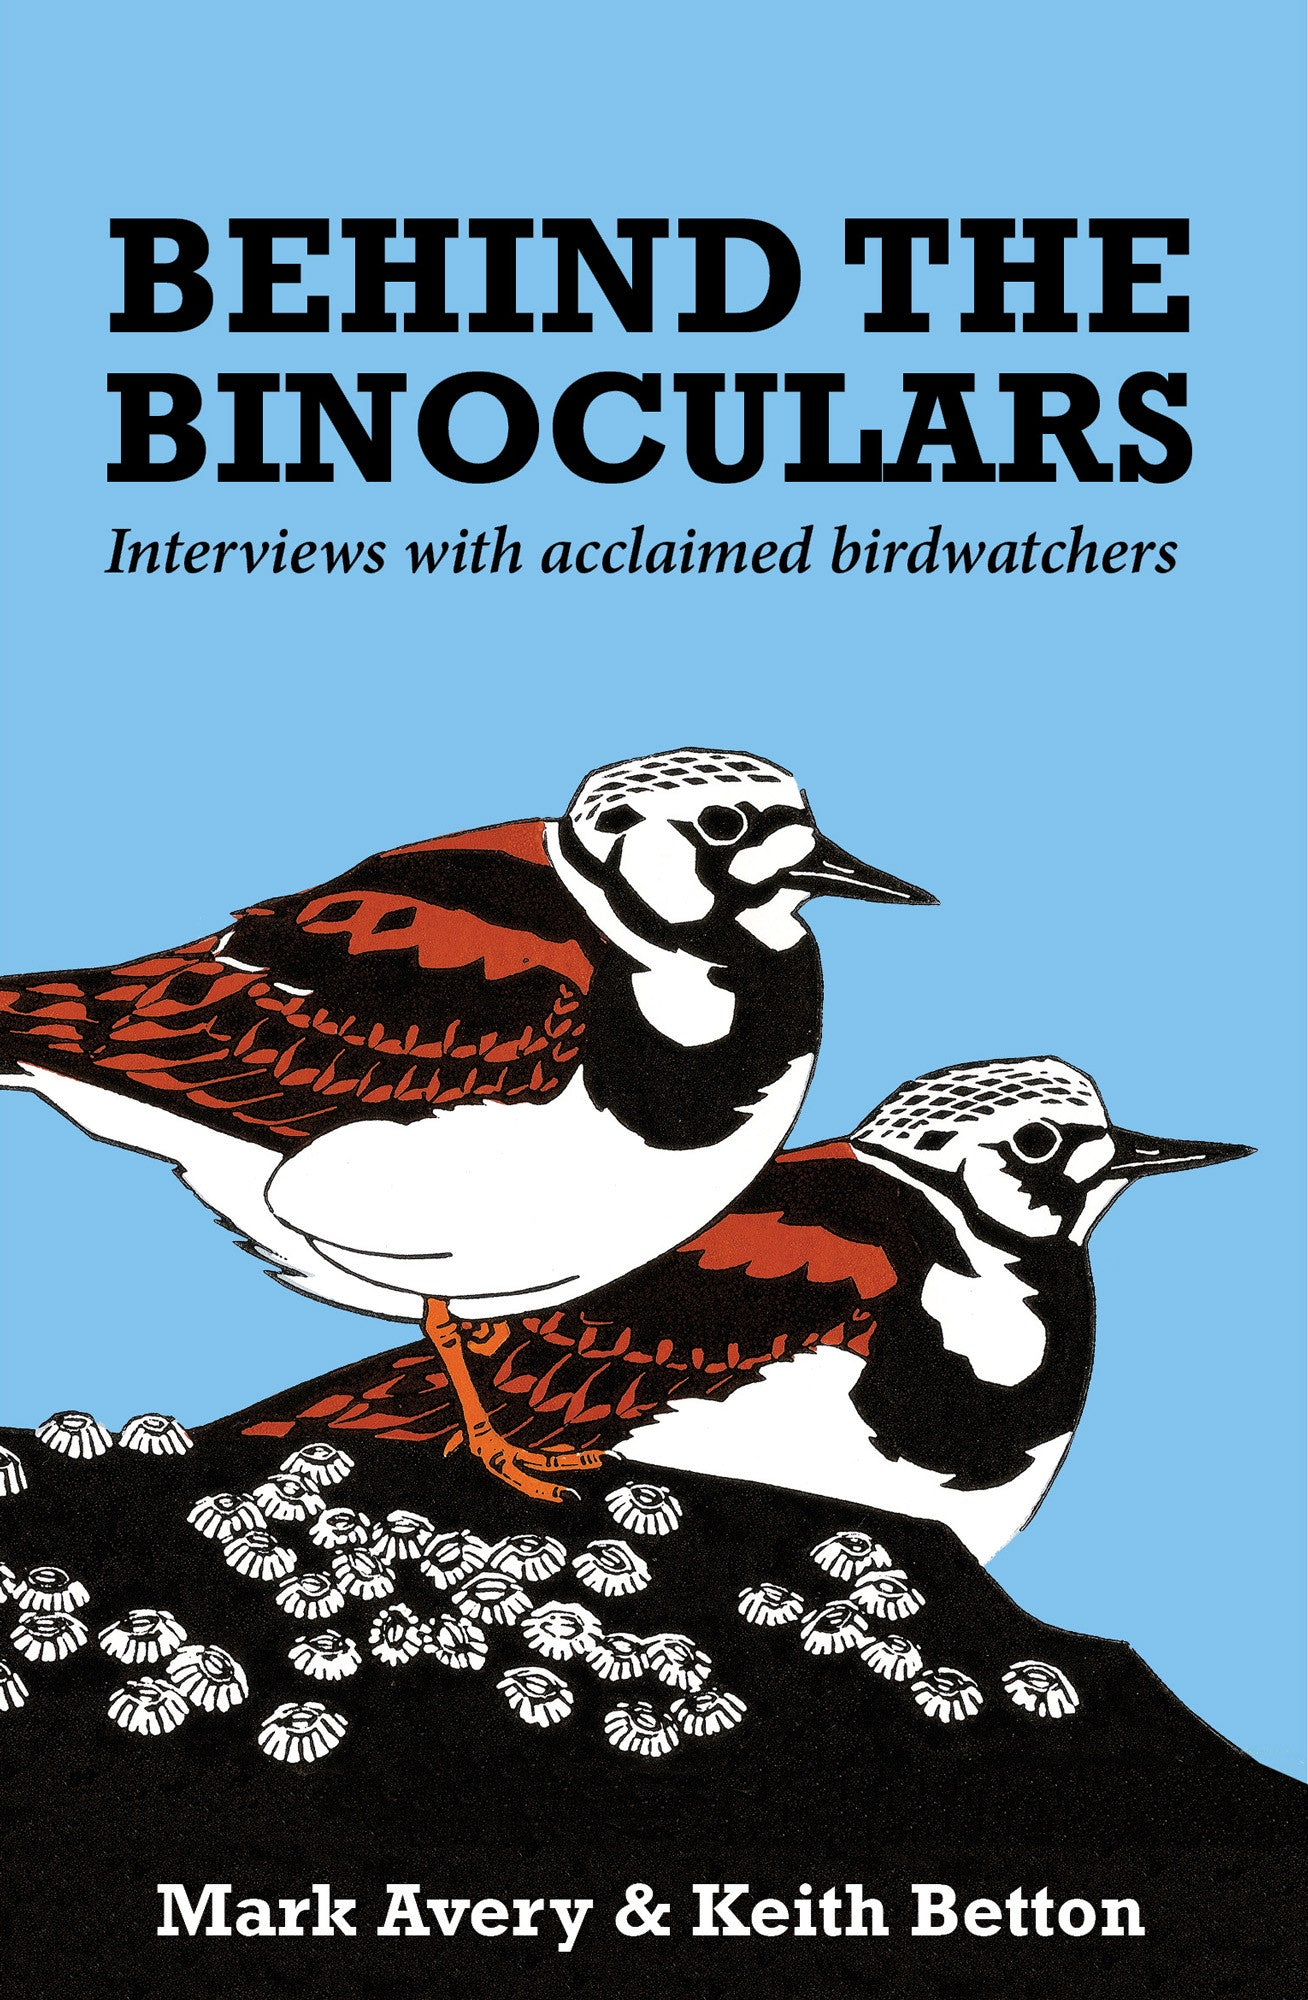 Behind the Binoculars - Pelagic Publishing